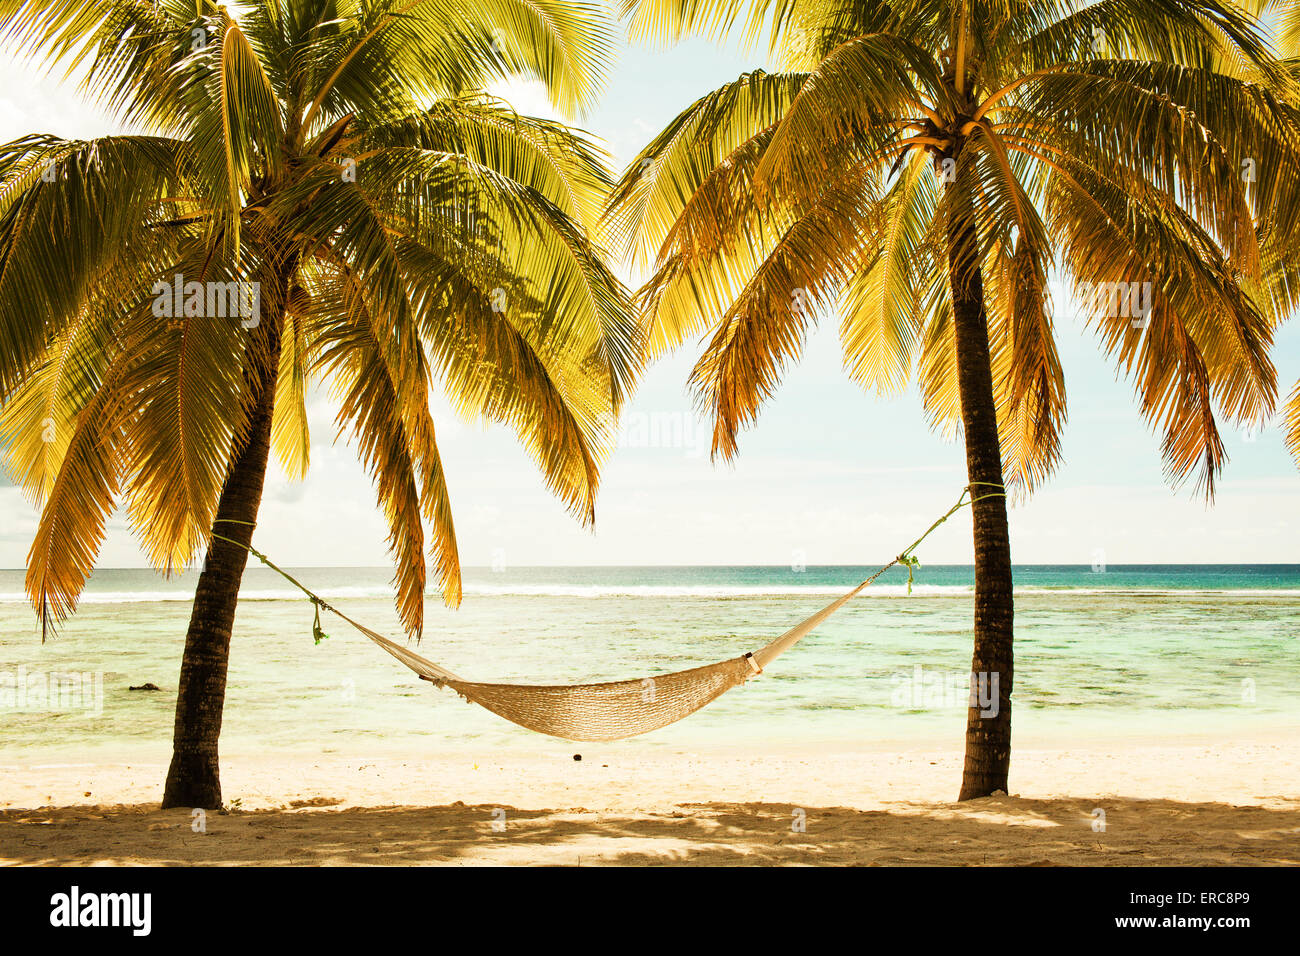 swing on paradise tropical beach stockfotos swing on paradise tropical beach bilder alamy. Black Bedroom Furniture Sets. Home Design Ideas